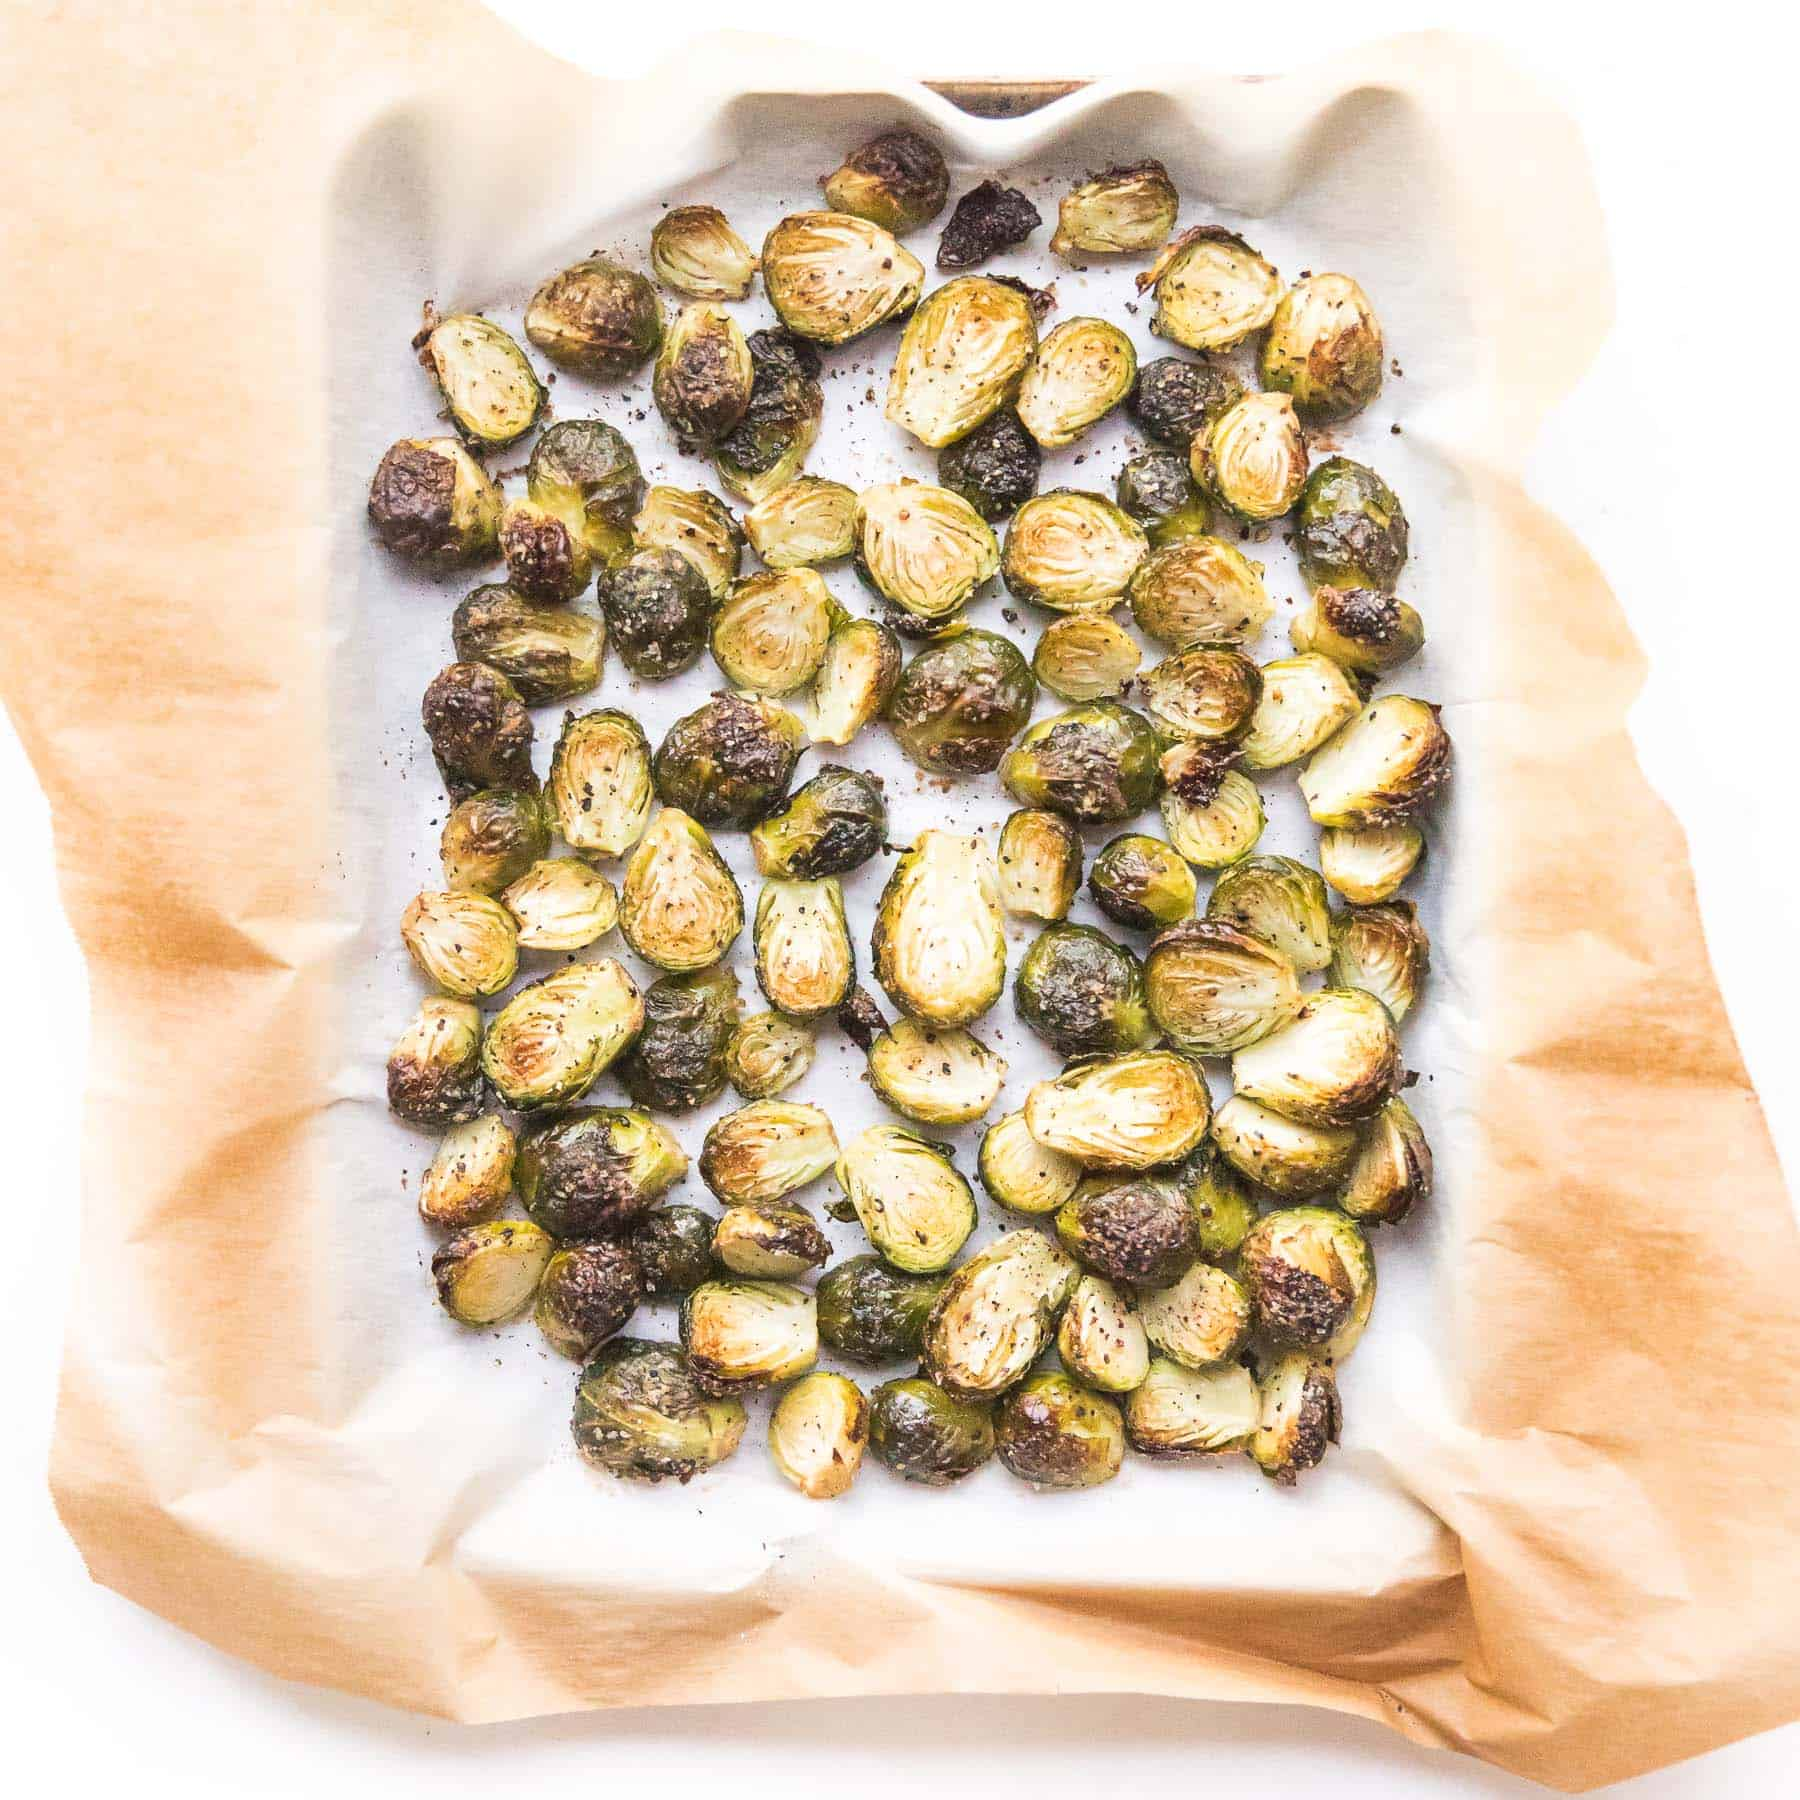 roasted brussels sprouts on a rimmed baking sheet